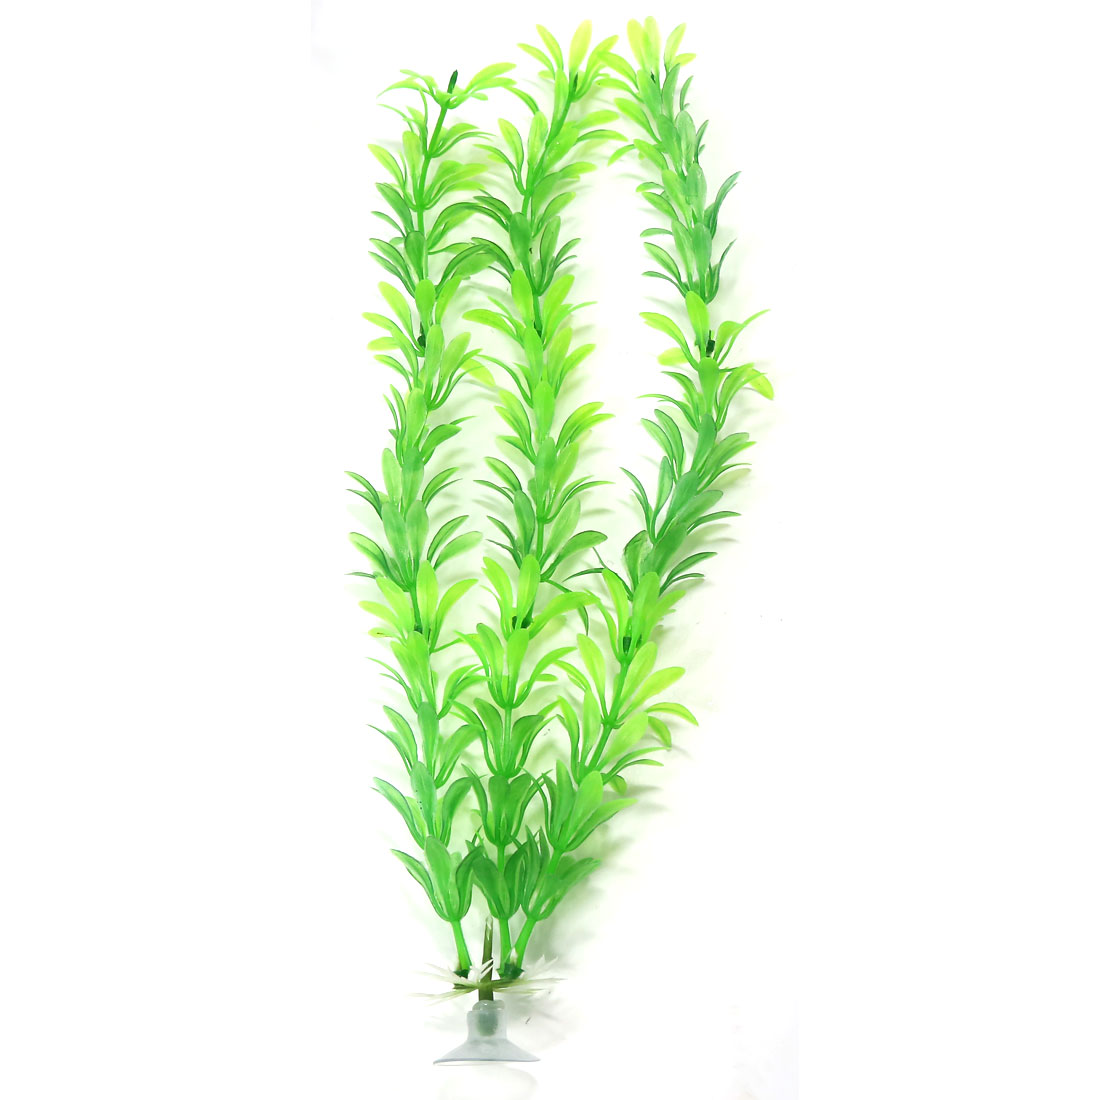 10 pieces Green Aquarium Grass Plants Ornament with sucker base